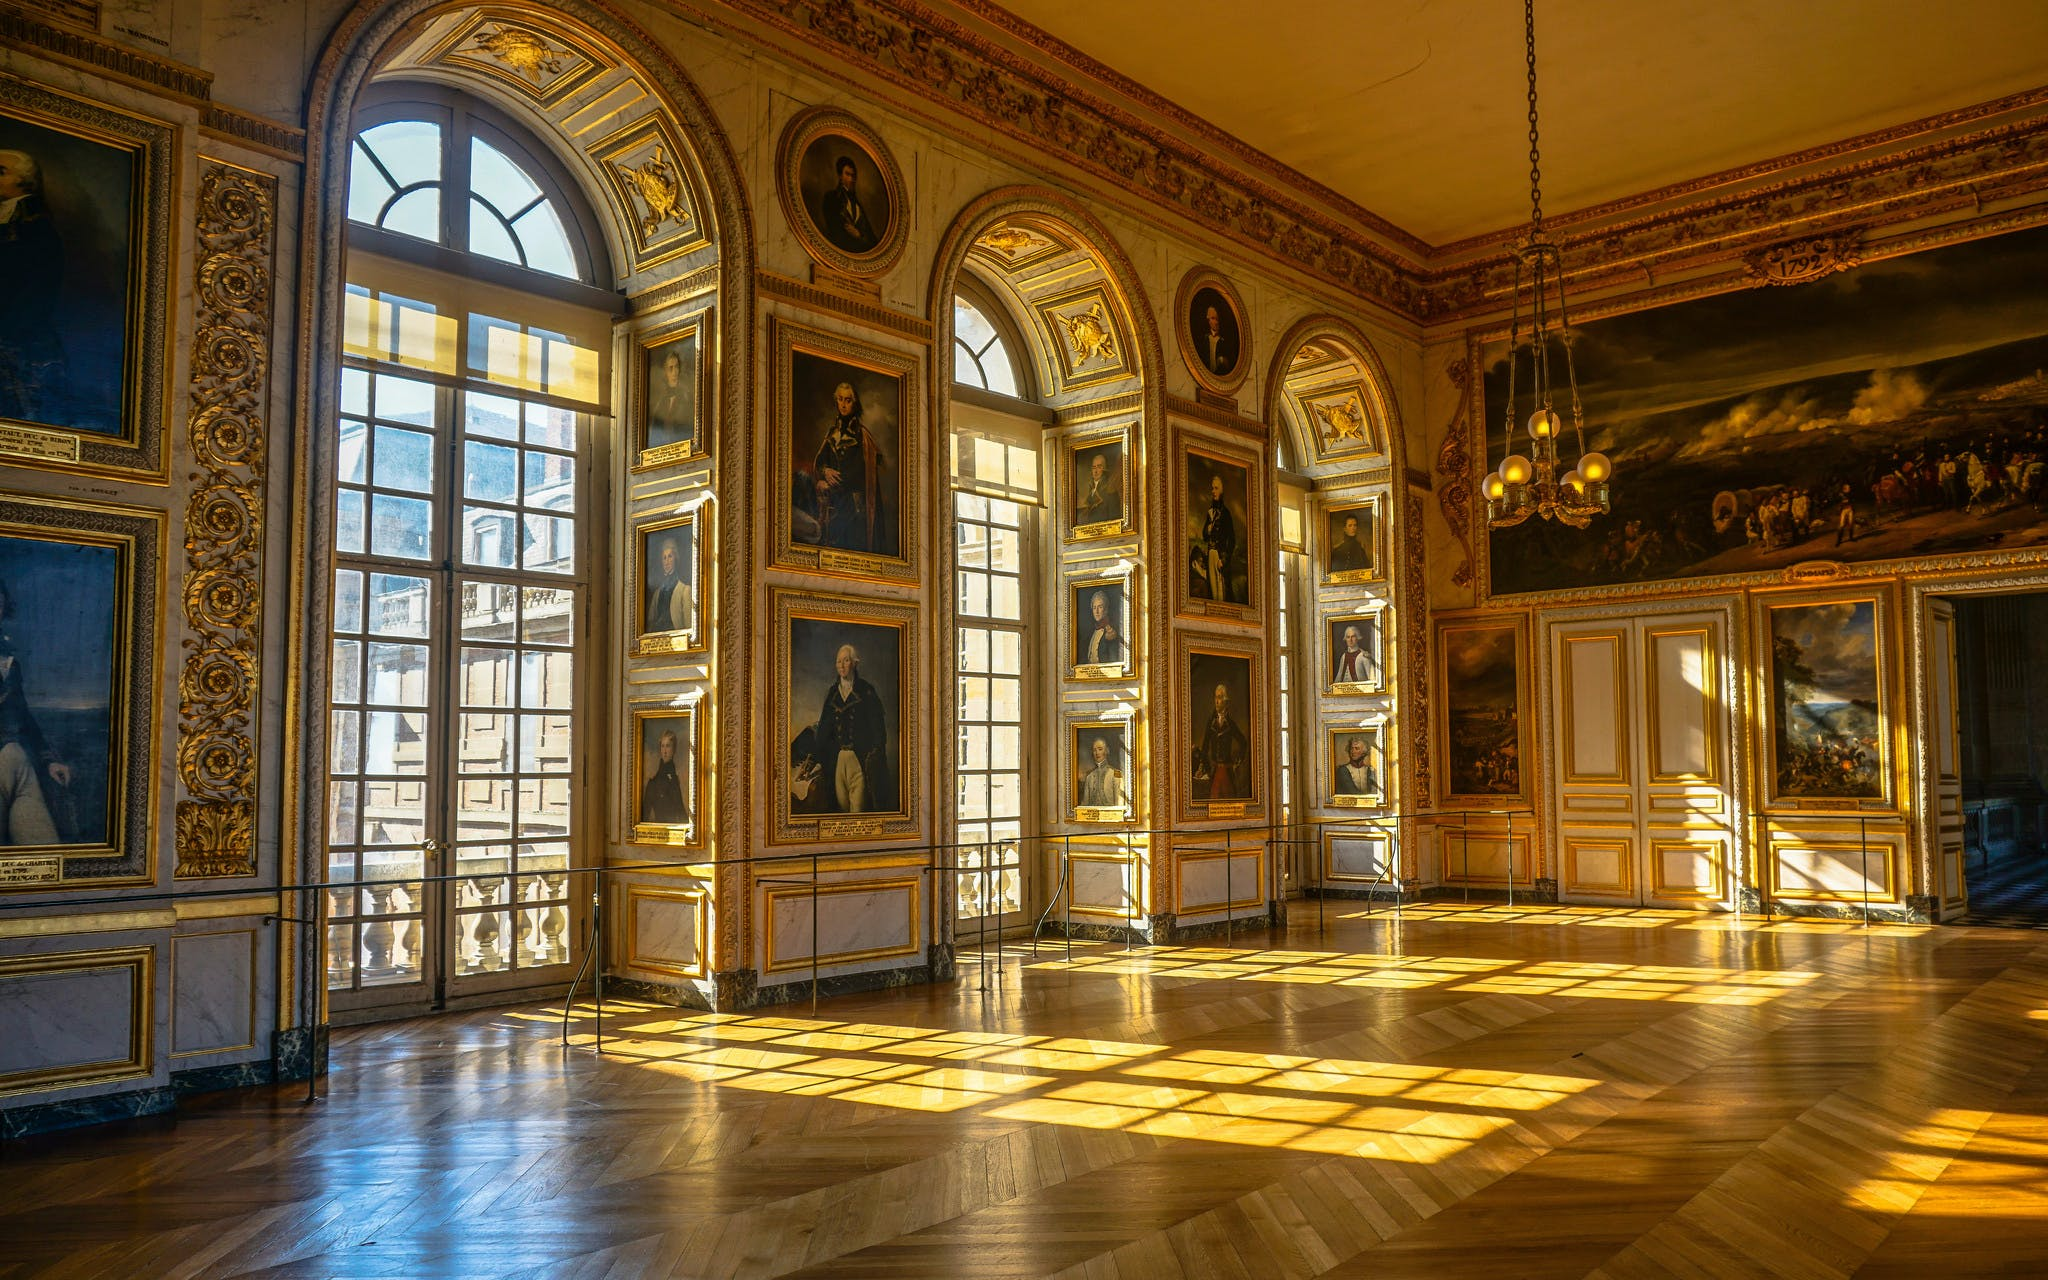 Palace of Versailles Tours: Visiting the Hall of Mirrors, the Grand Trianon and more